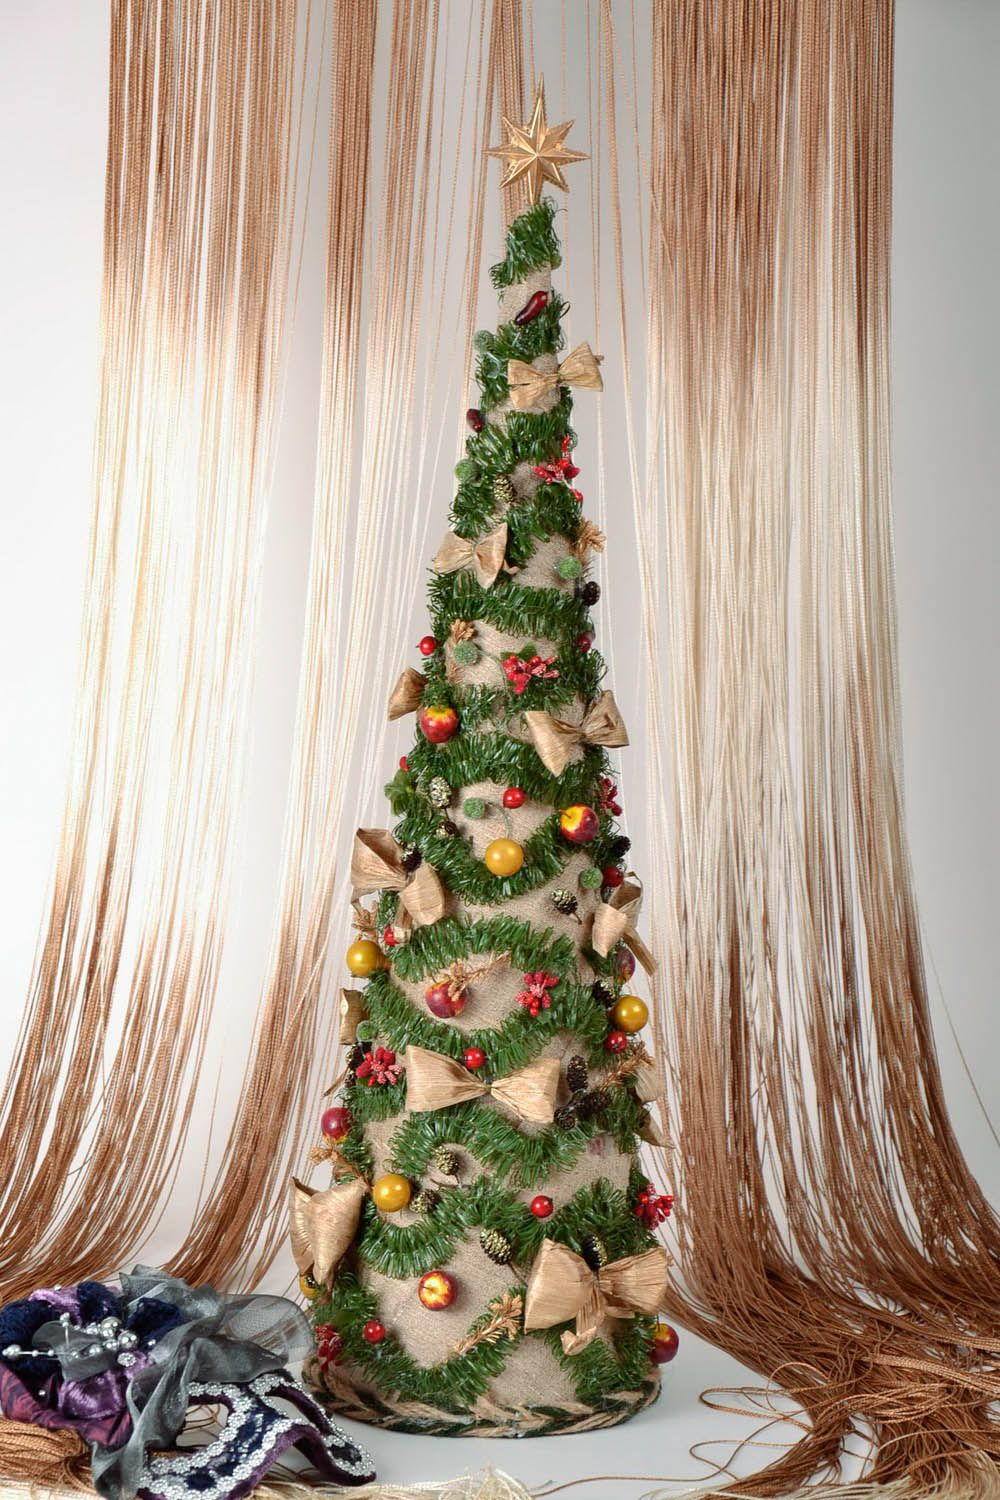 Decorative Christmas tree photo 2